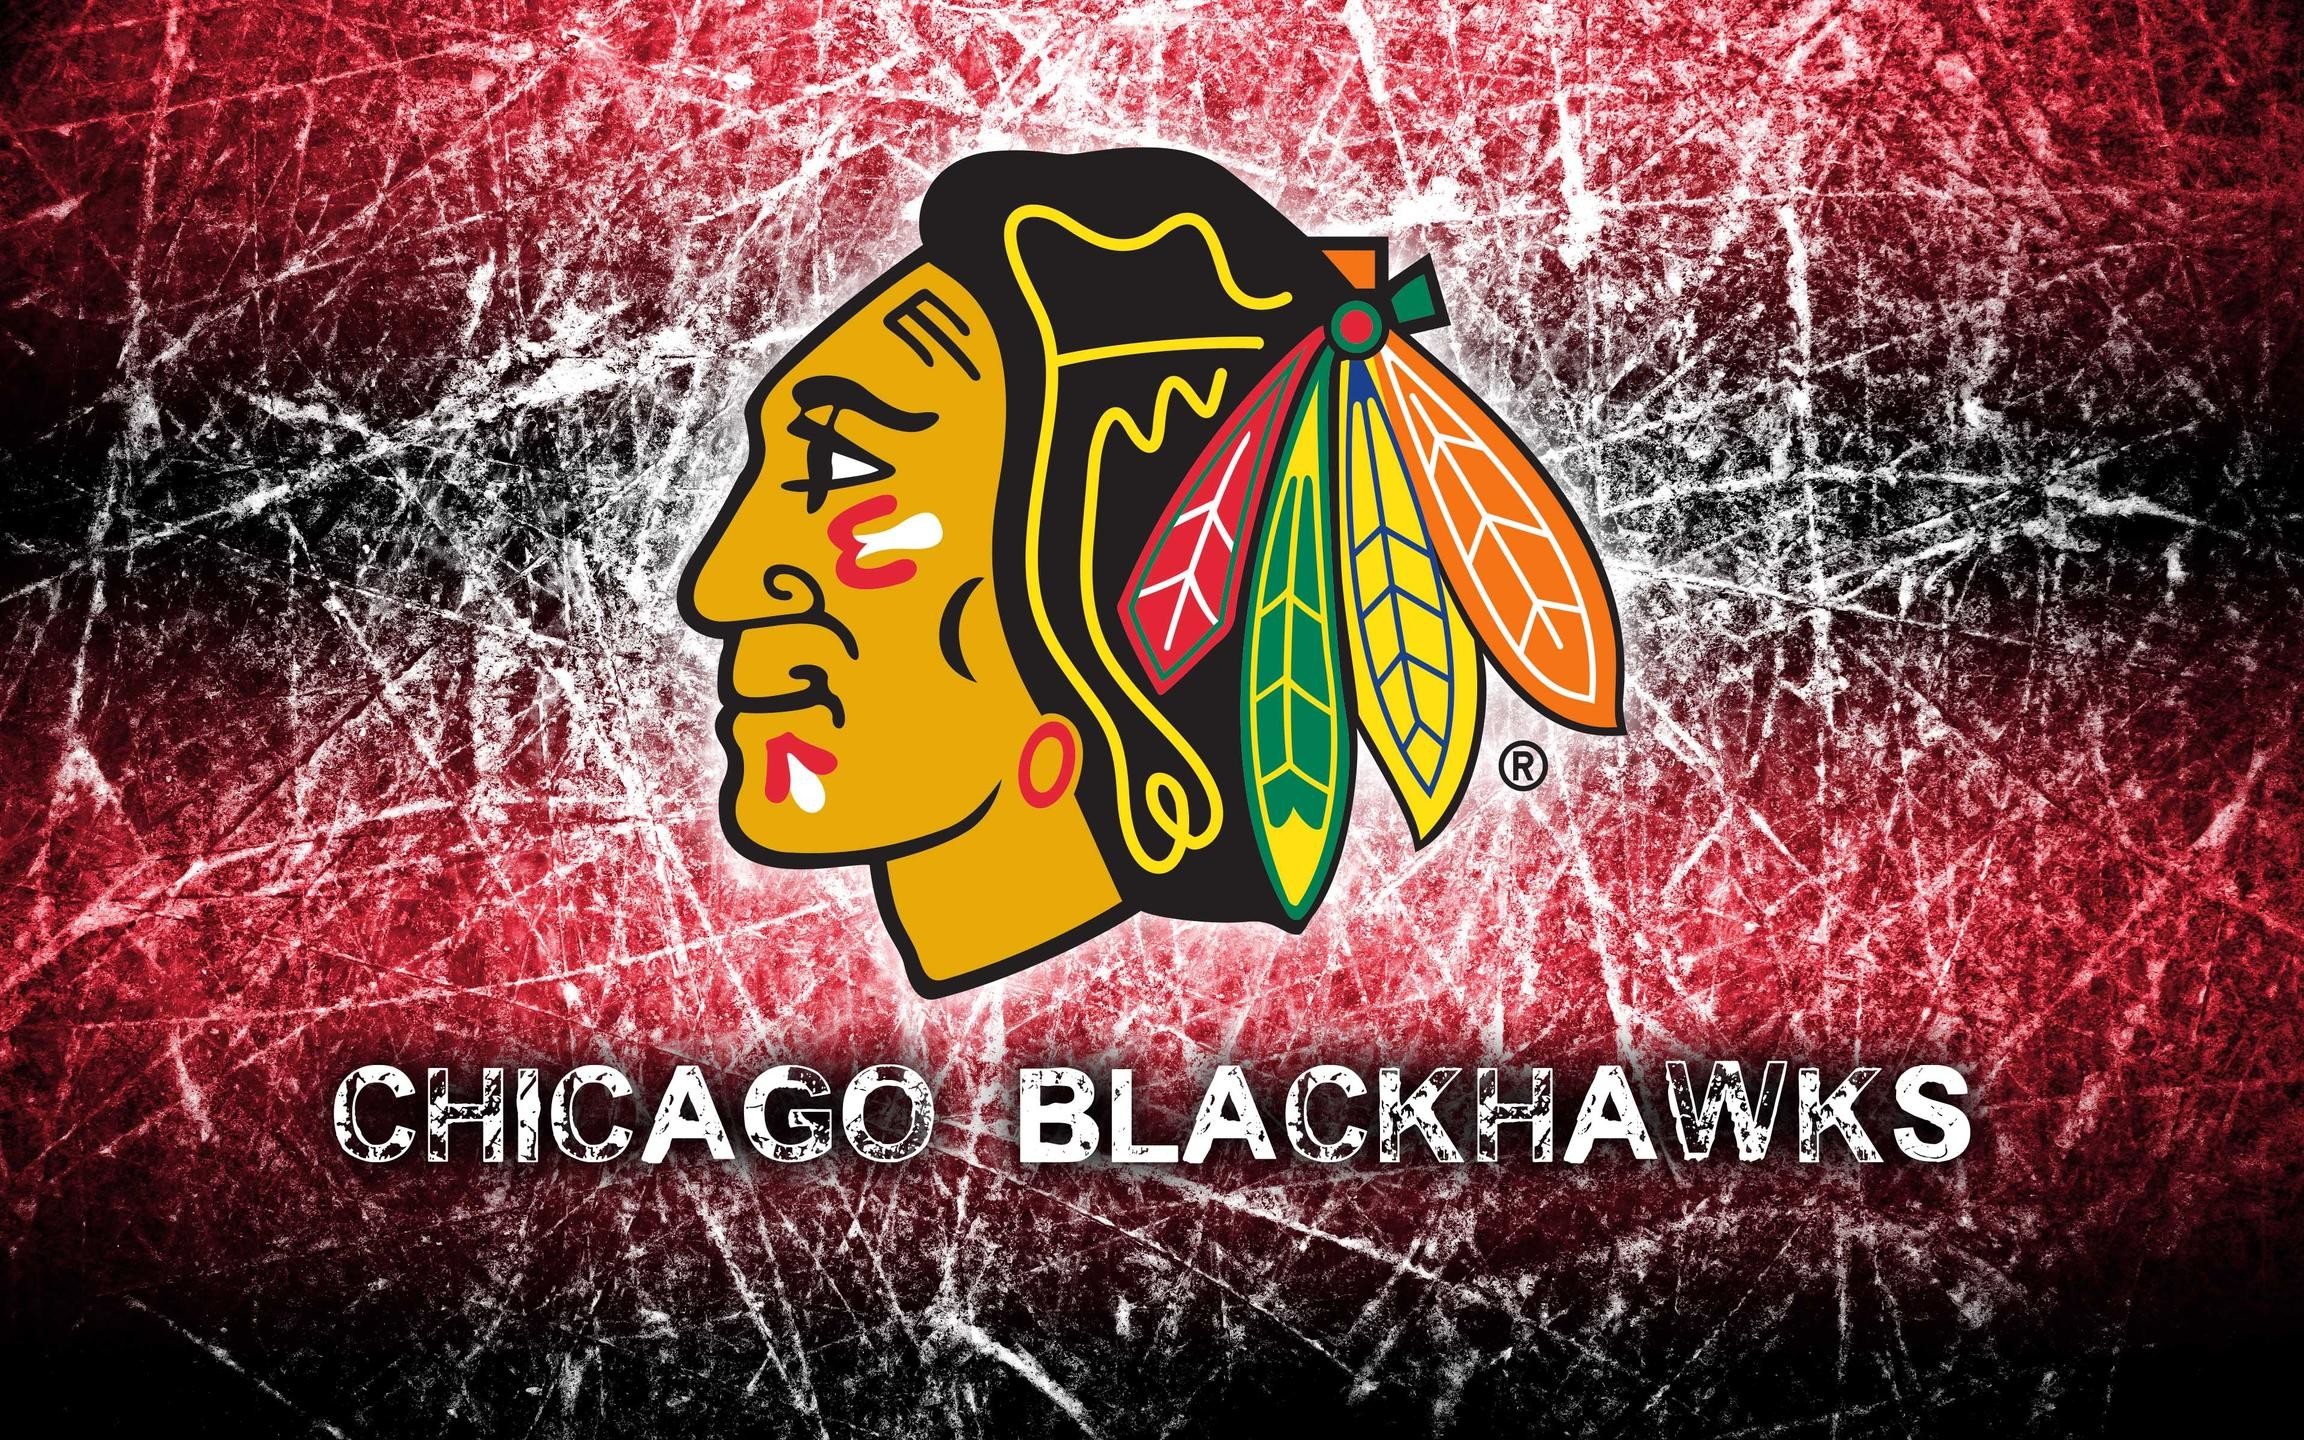 Chicago Blackhawks 2014 Logo Wallpaper Wide or HD | Sports Wallpapers